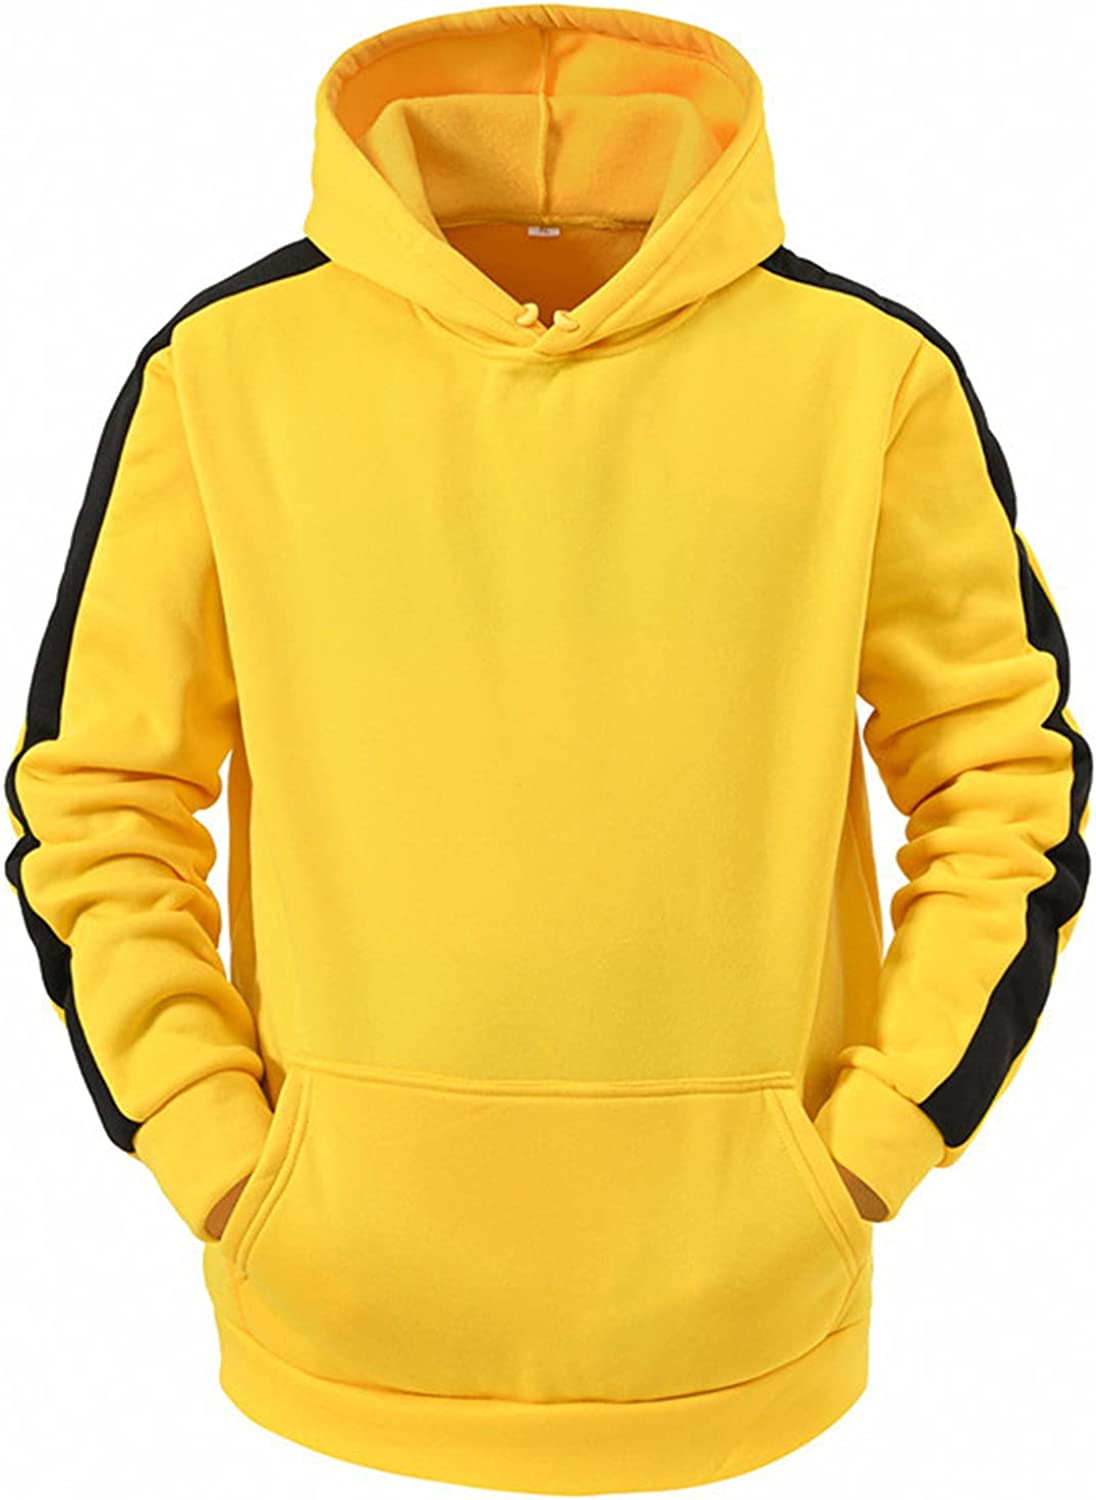 HONGJ Fall Hoodies for Mens, Winter Solid Color Drawstring Hooded Sweatshirts Sports Workout Casual Pullover with Pockets